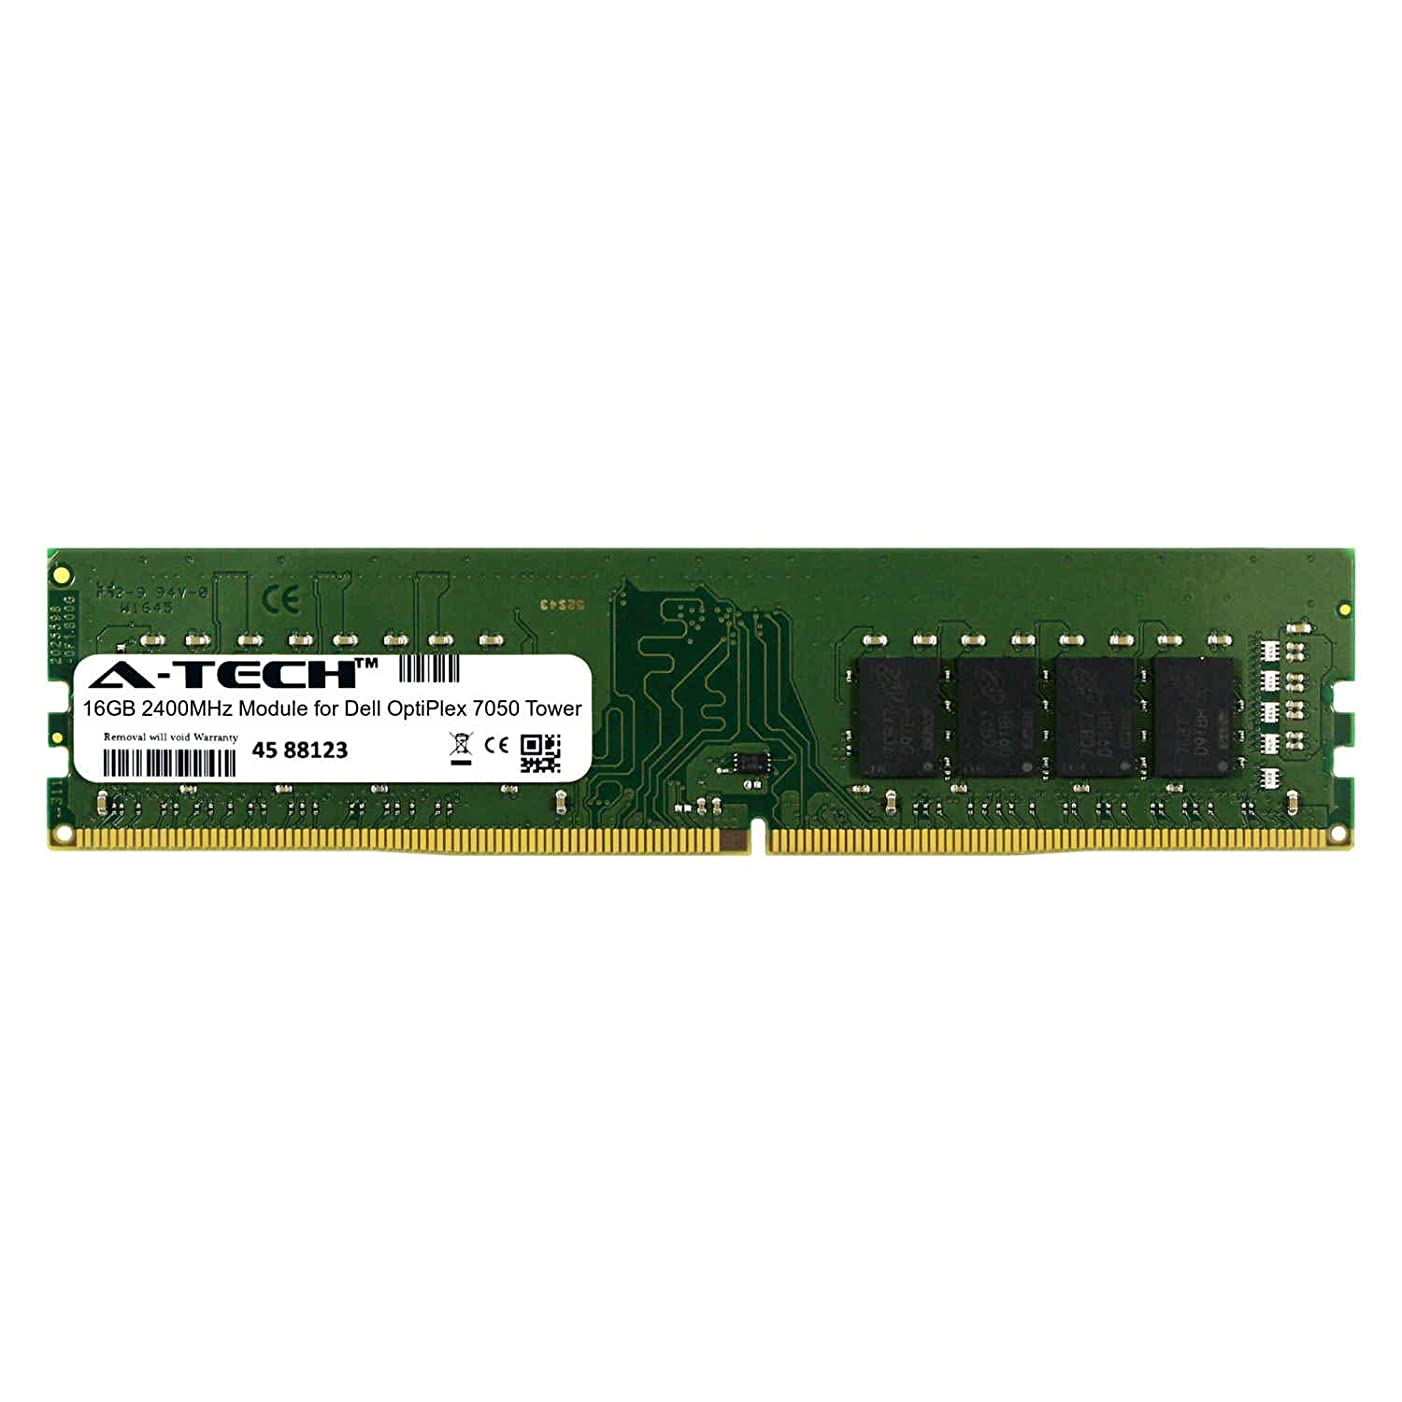 A-Tech 16GB Module for Dell OptiPlex 7050 Tower Desktop & Workstation Motherboard Compatible DDR4 2400Mhz Memory Ram (ATMS283832A25822X1)